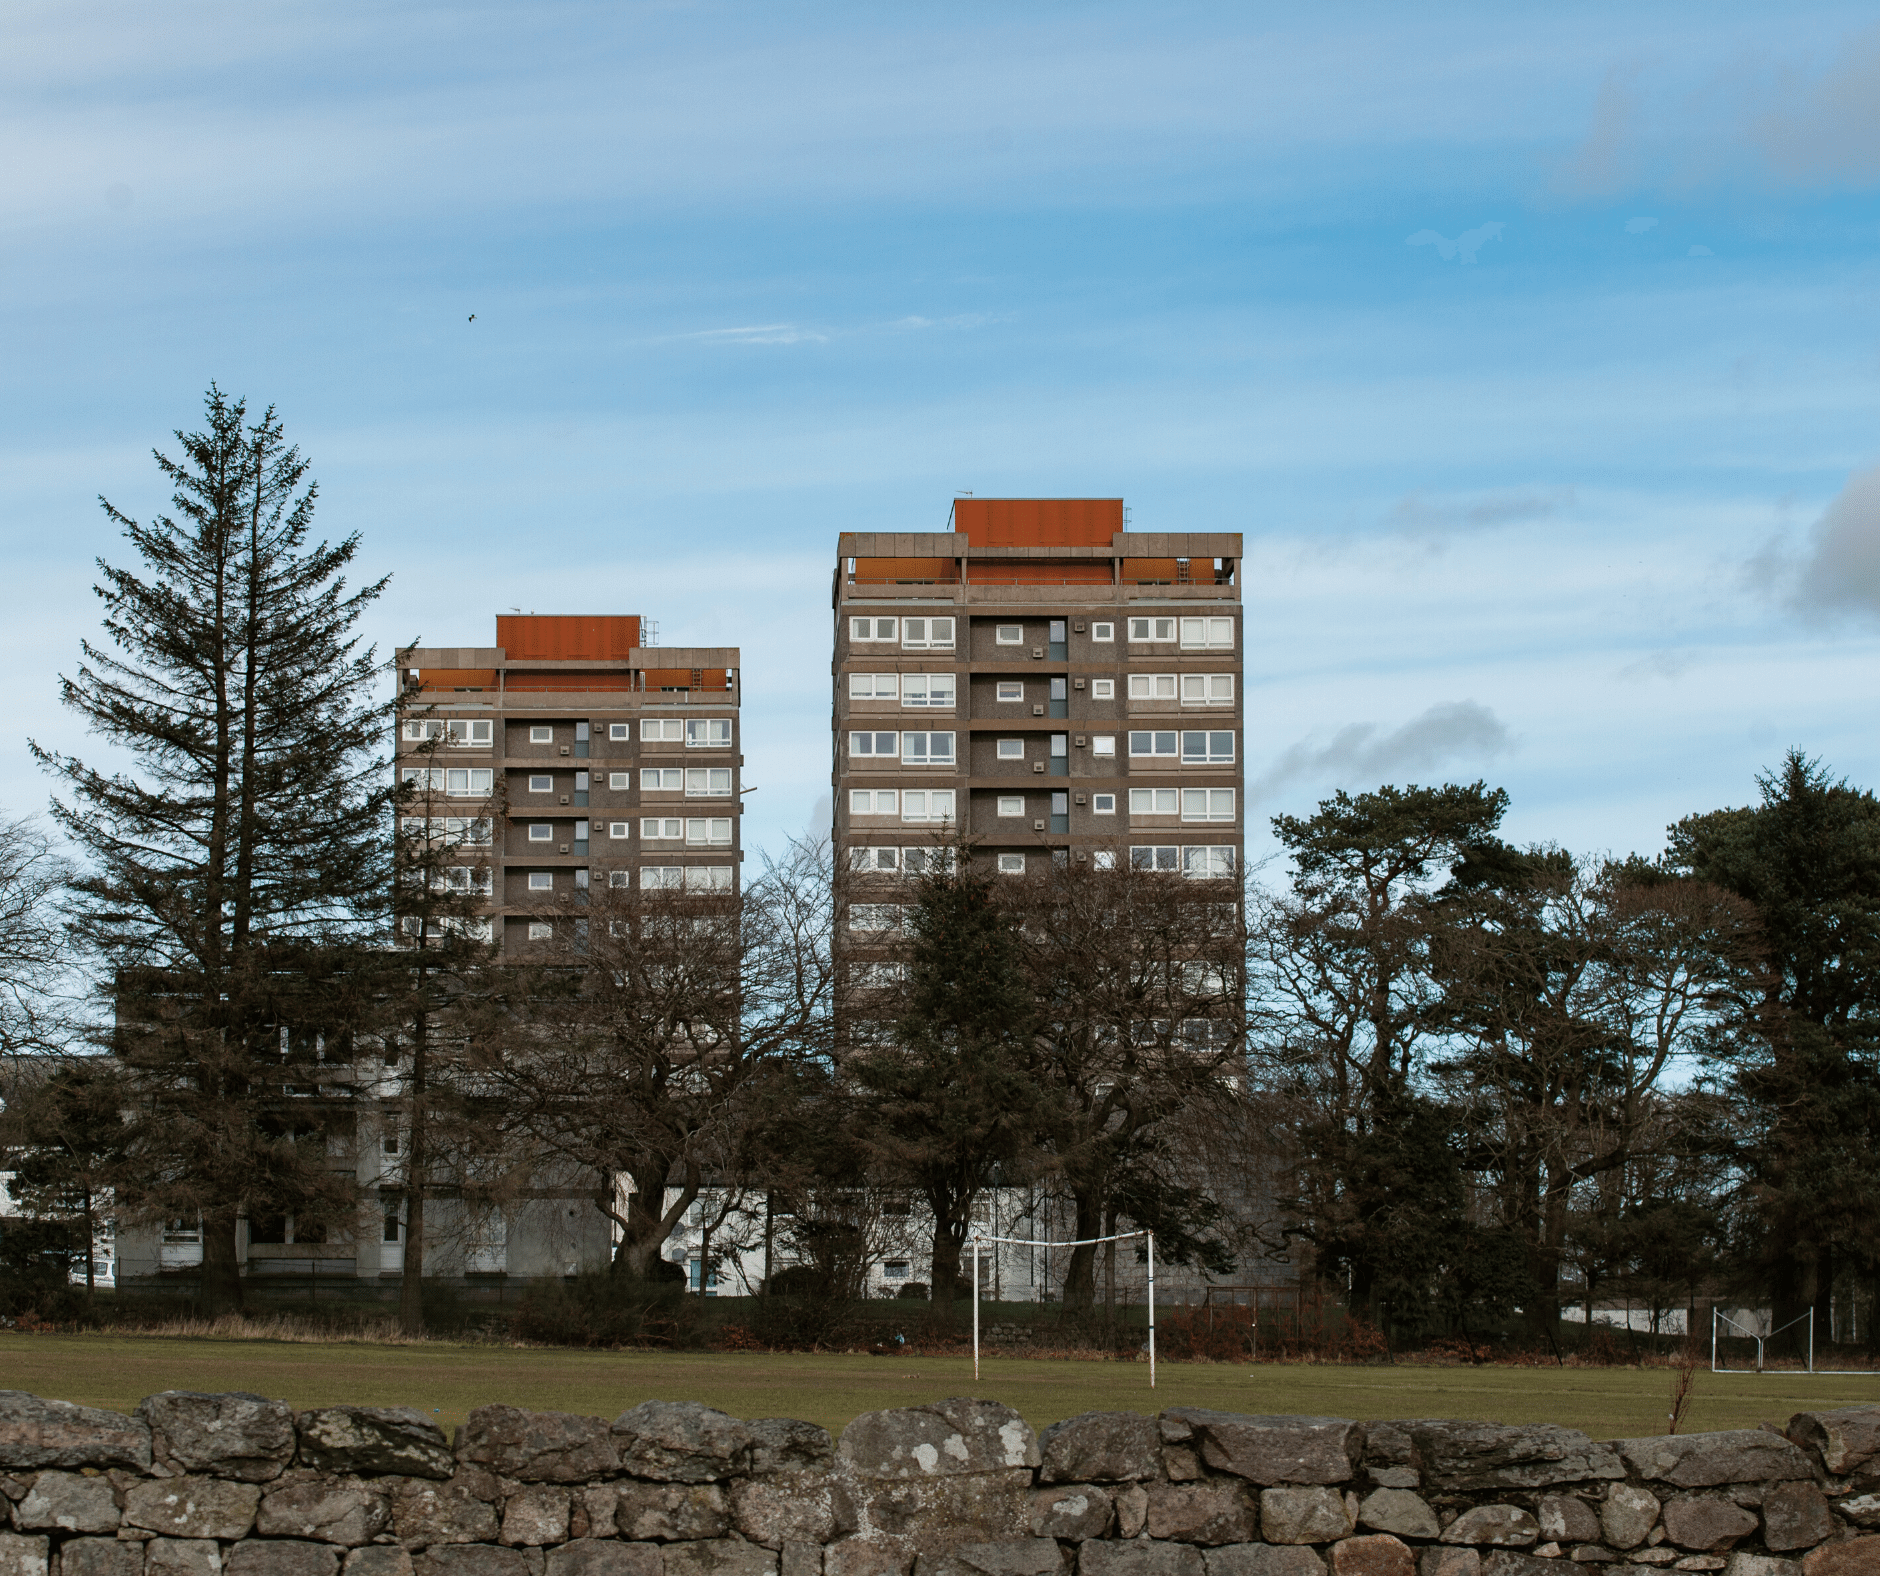 Multi-storey buildings in Aberdeen